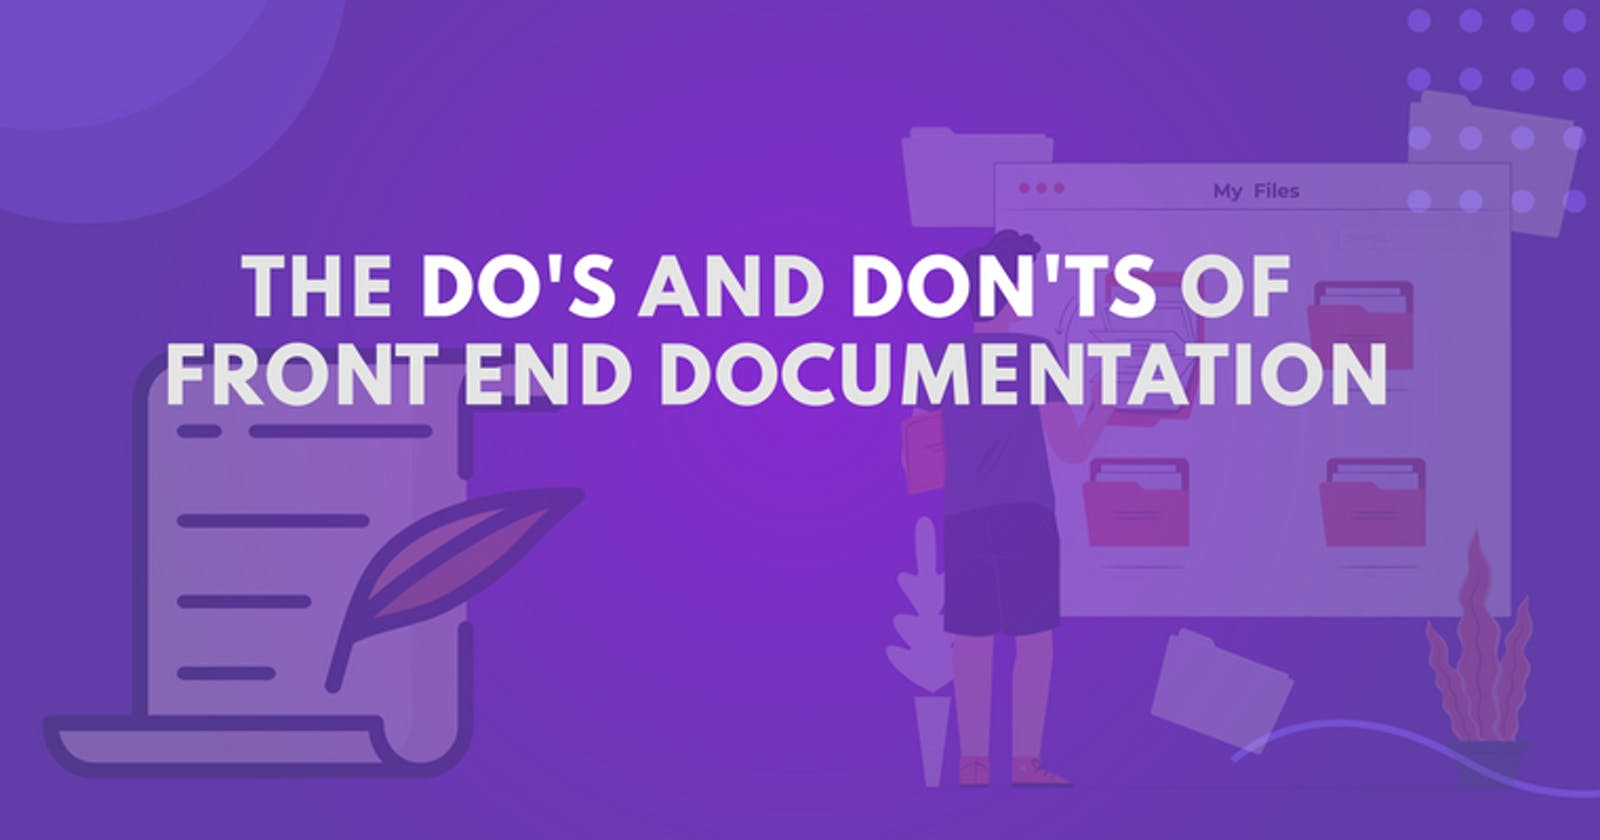 The Do's and Don'ts of Front-End Documentation